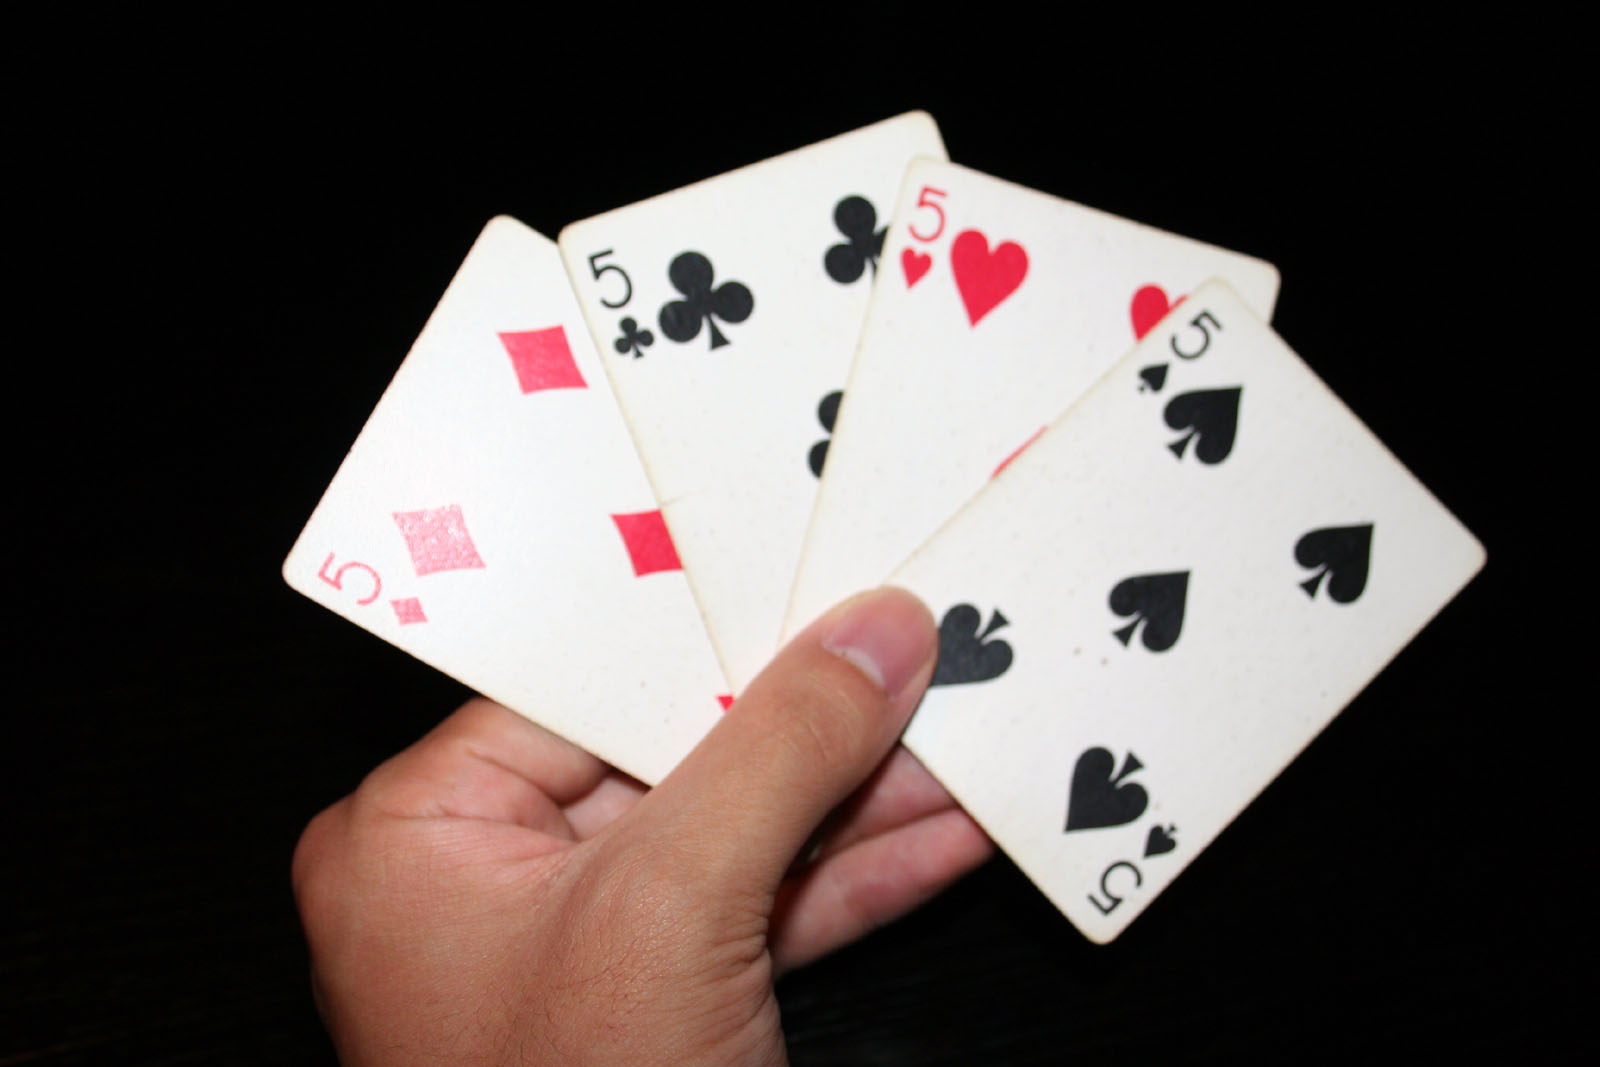 Description 5 playing cards.jpg